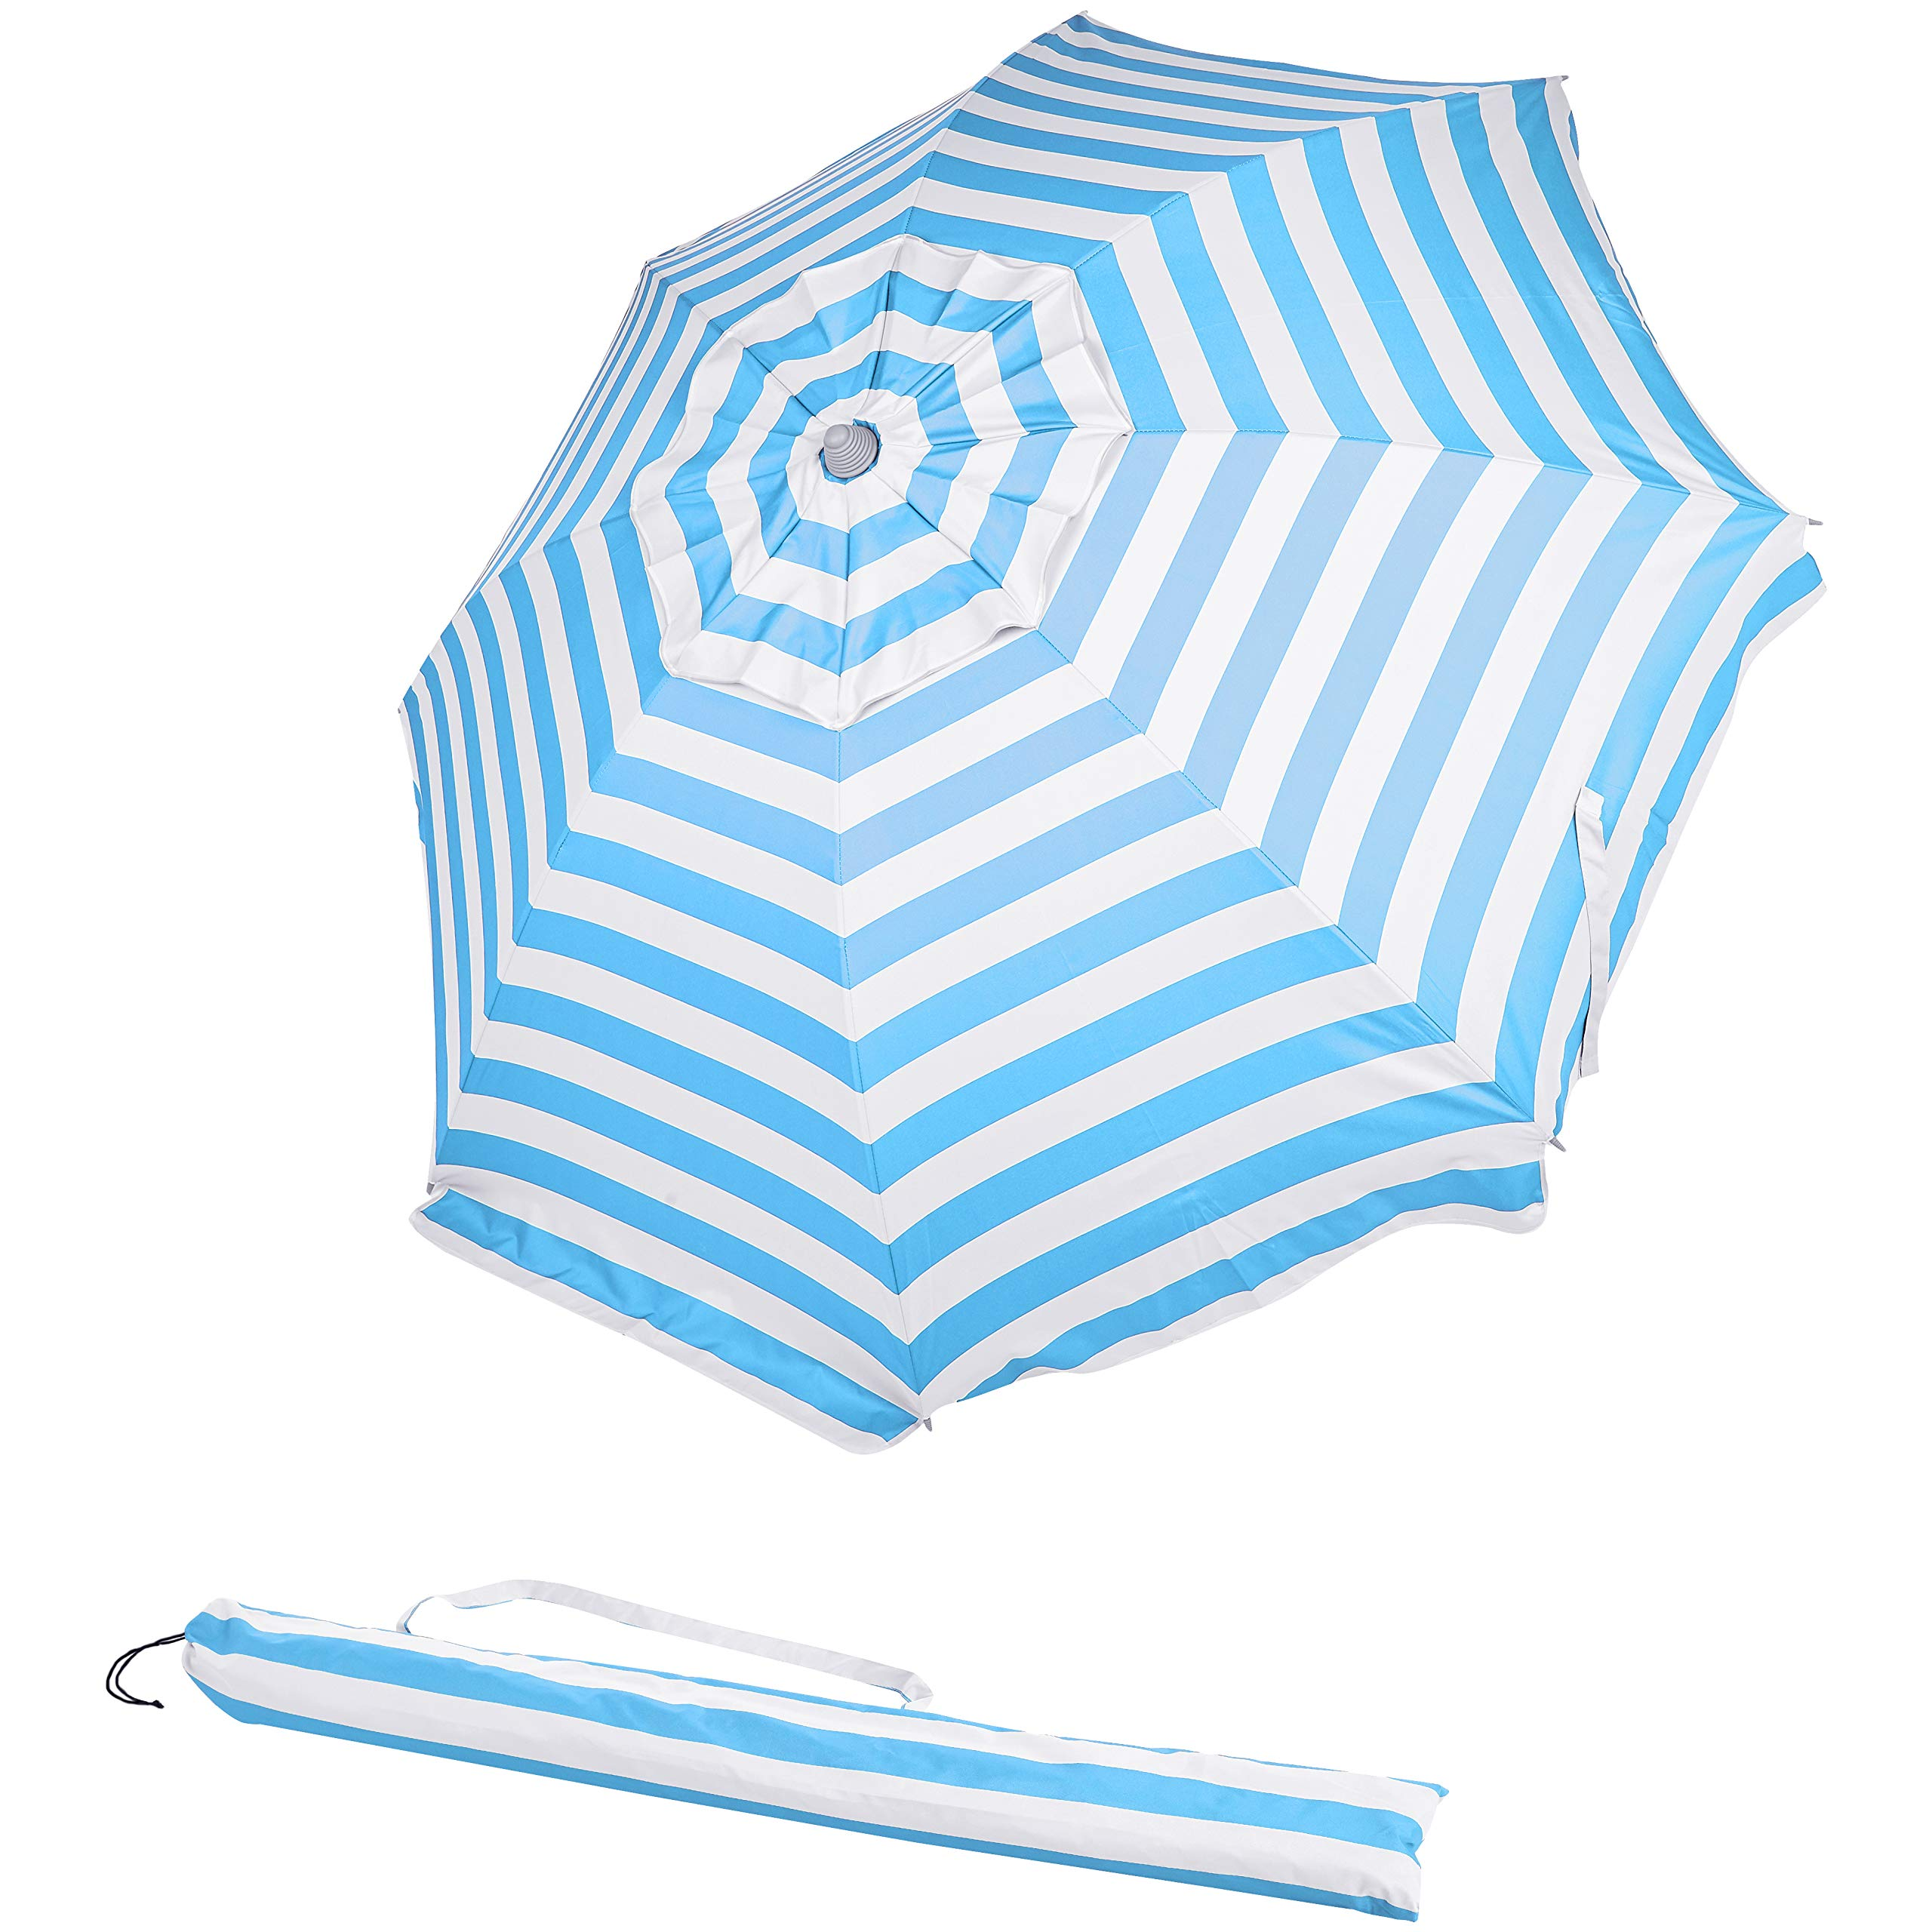 AmazonBasics Beach Umbrella - Light Blue Striped